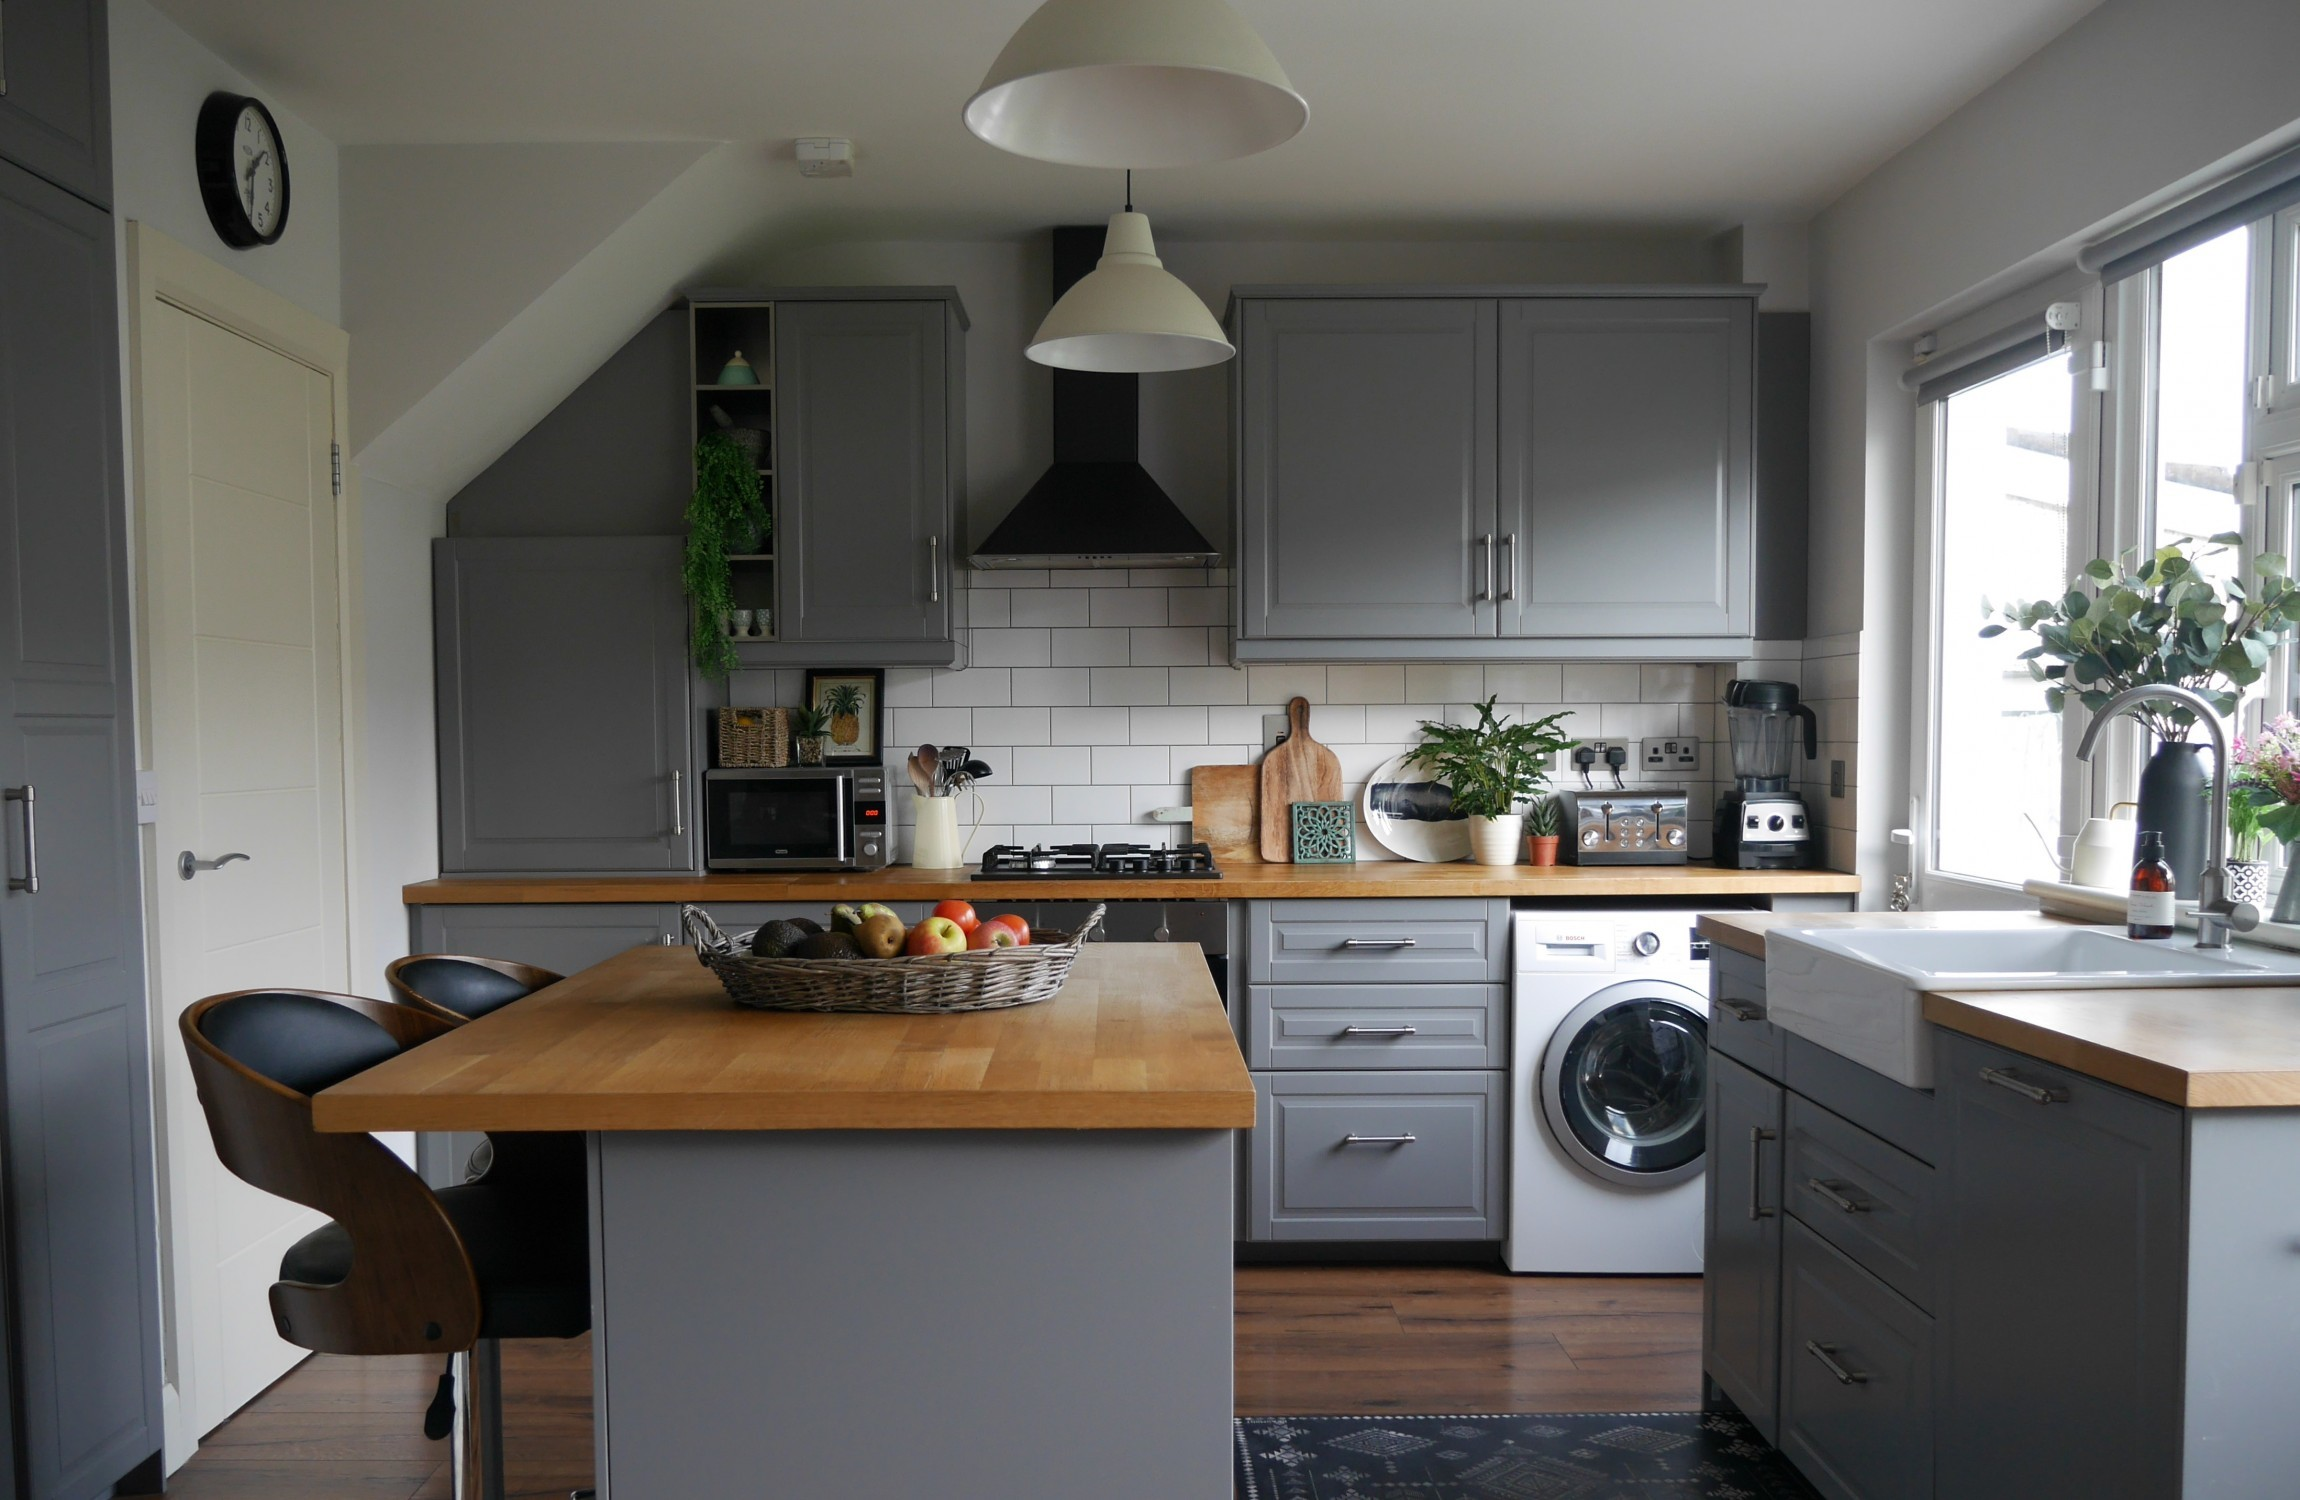 Floating Shelves Will Open Up This Space A Kitchen Design Expert Tackles 3 Reader Dilemmas